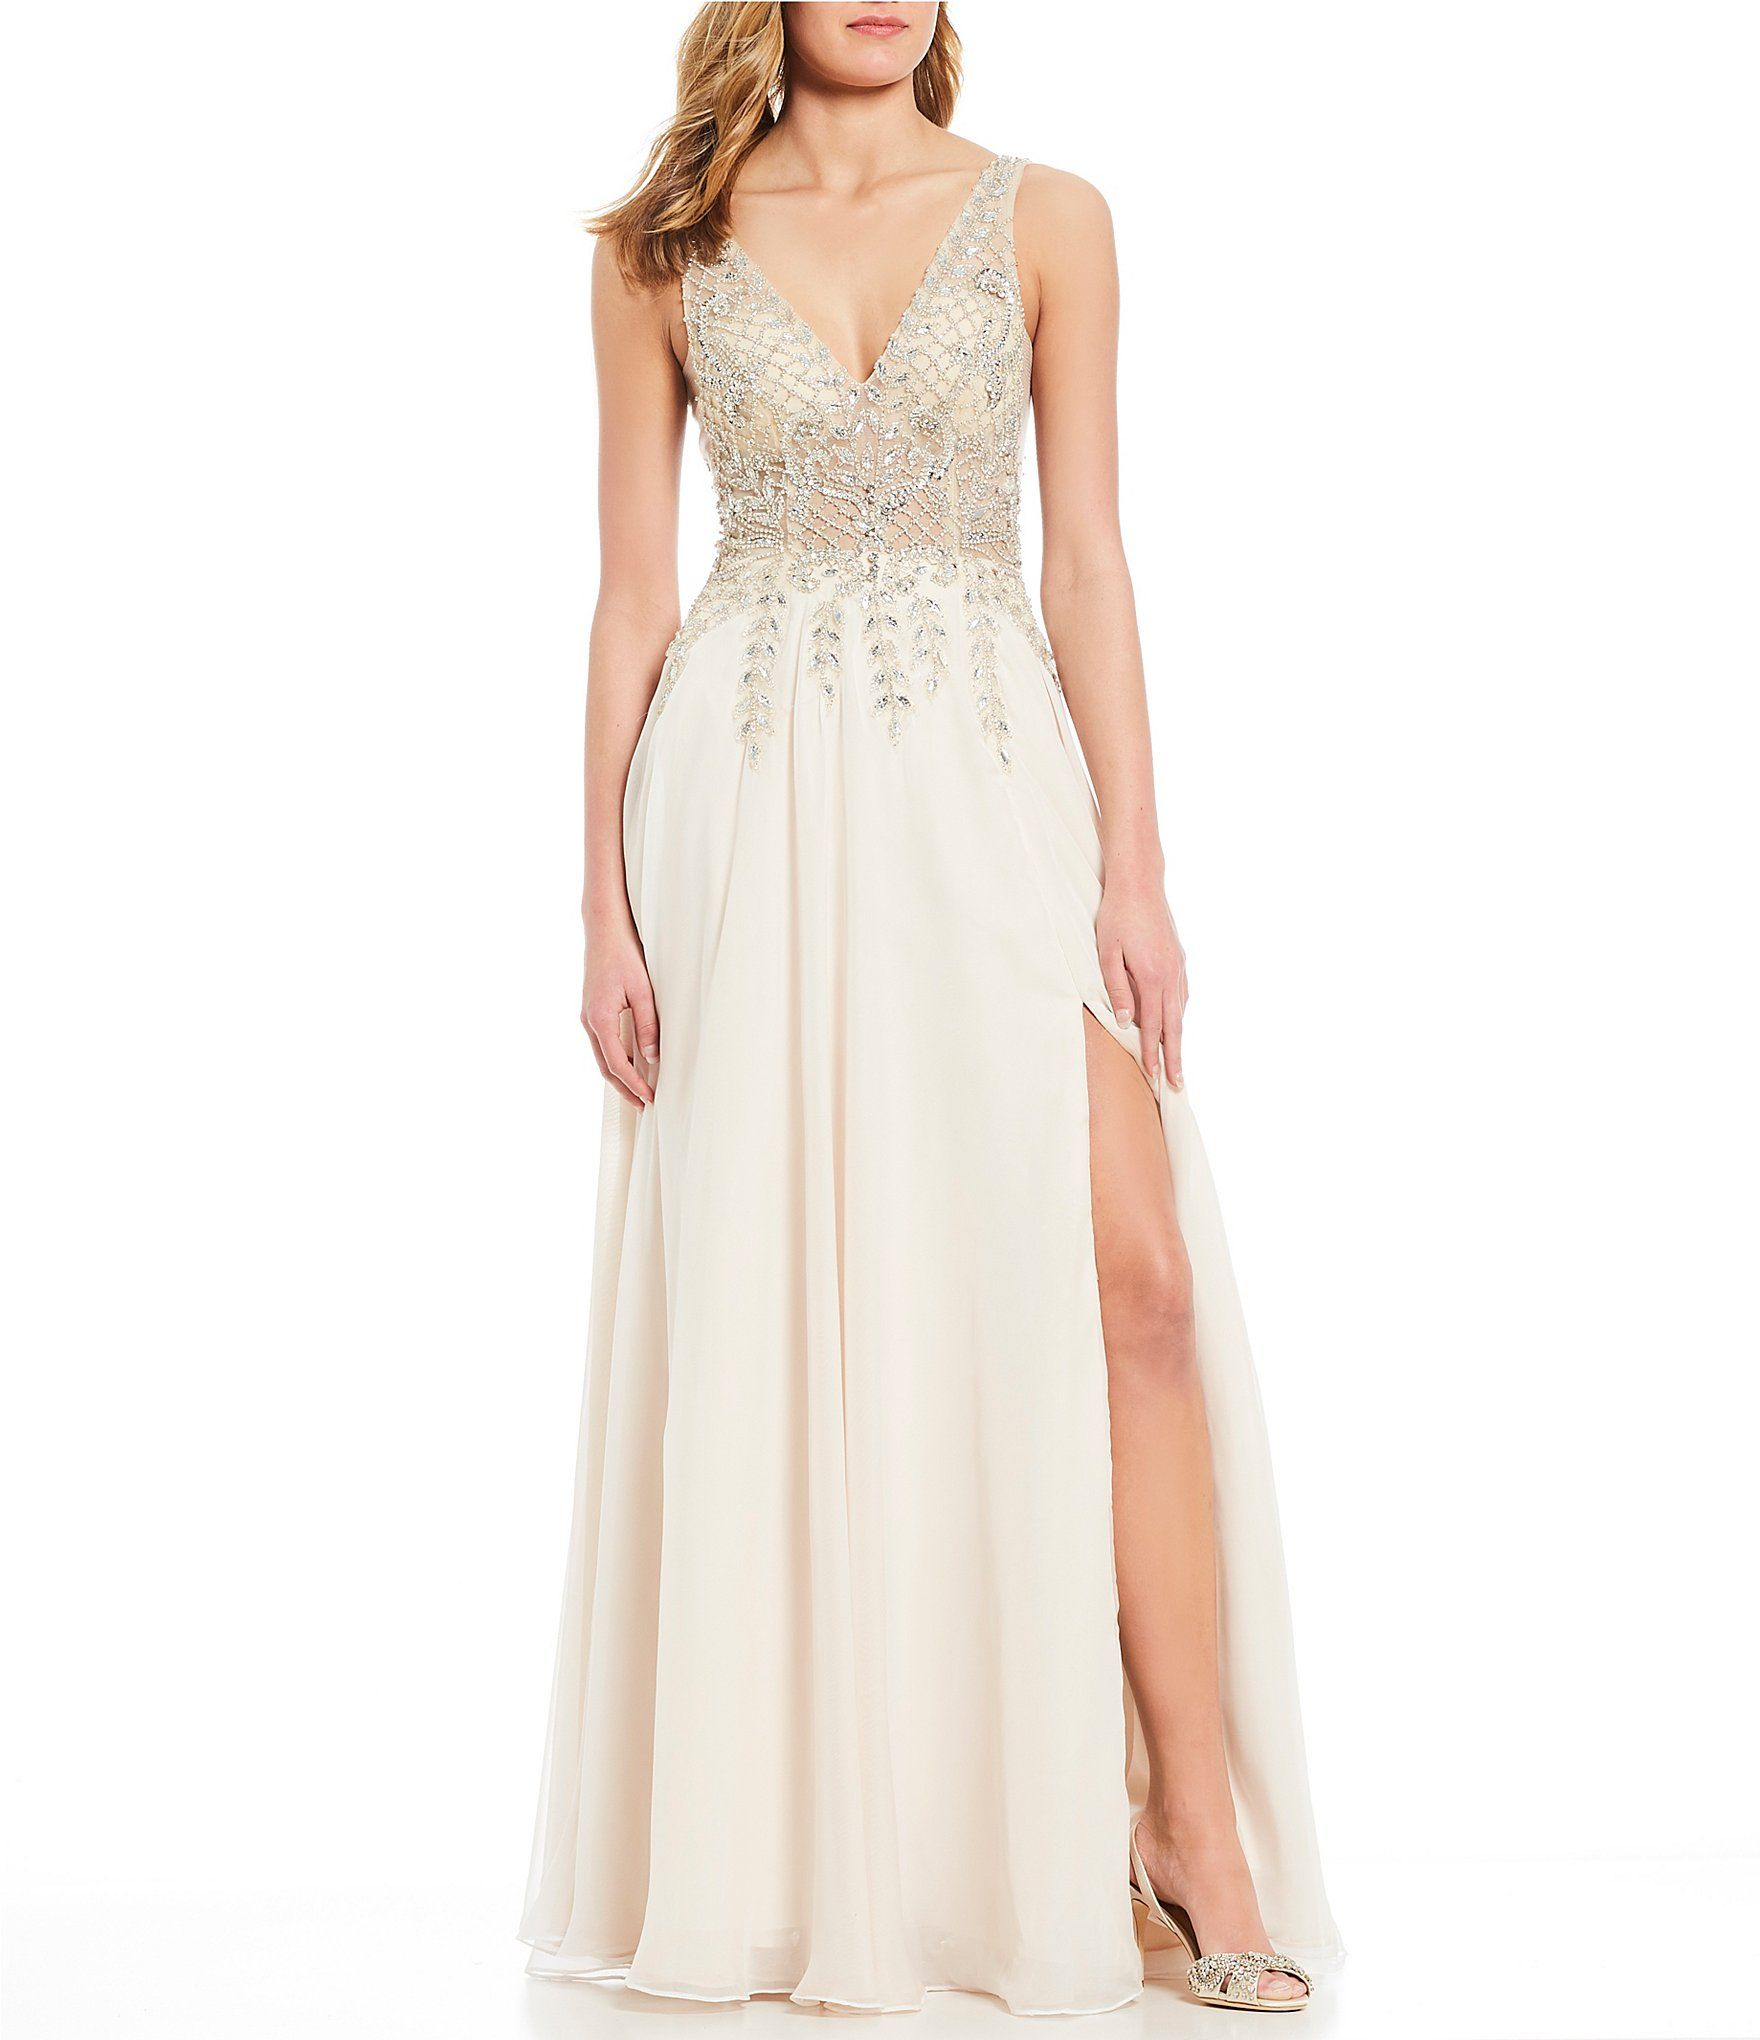 53995c9c18 Shop for GB Social V-Neck Crystal Beaded Gown at Dillards.com. Visit  Dillards.com to find clothing